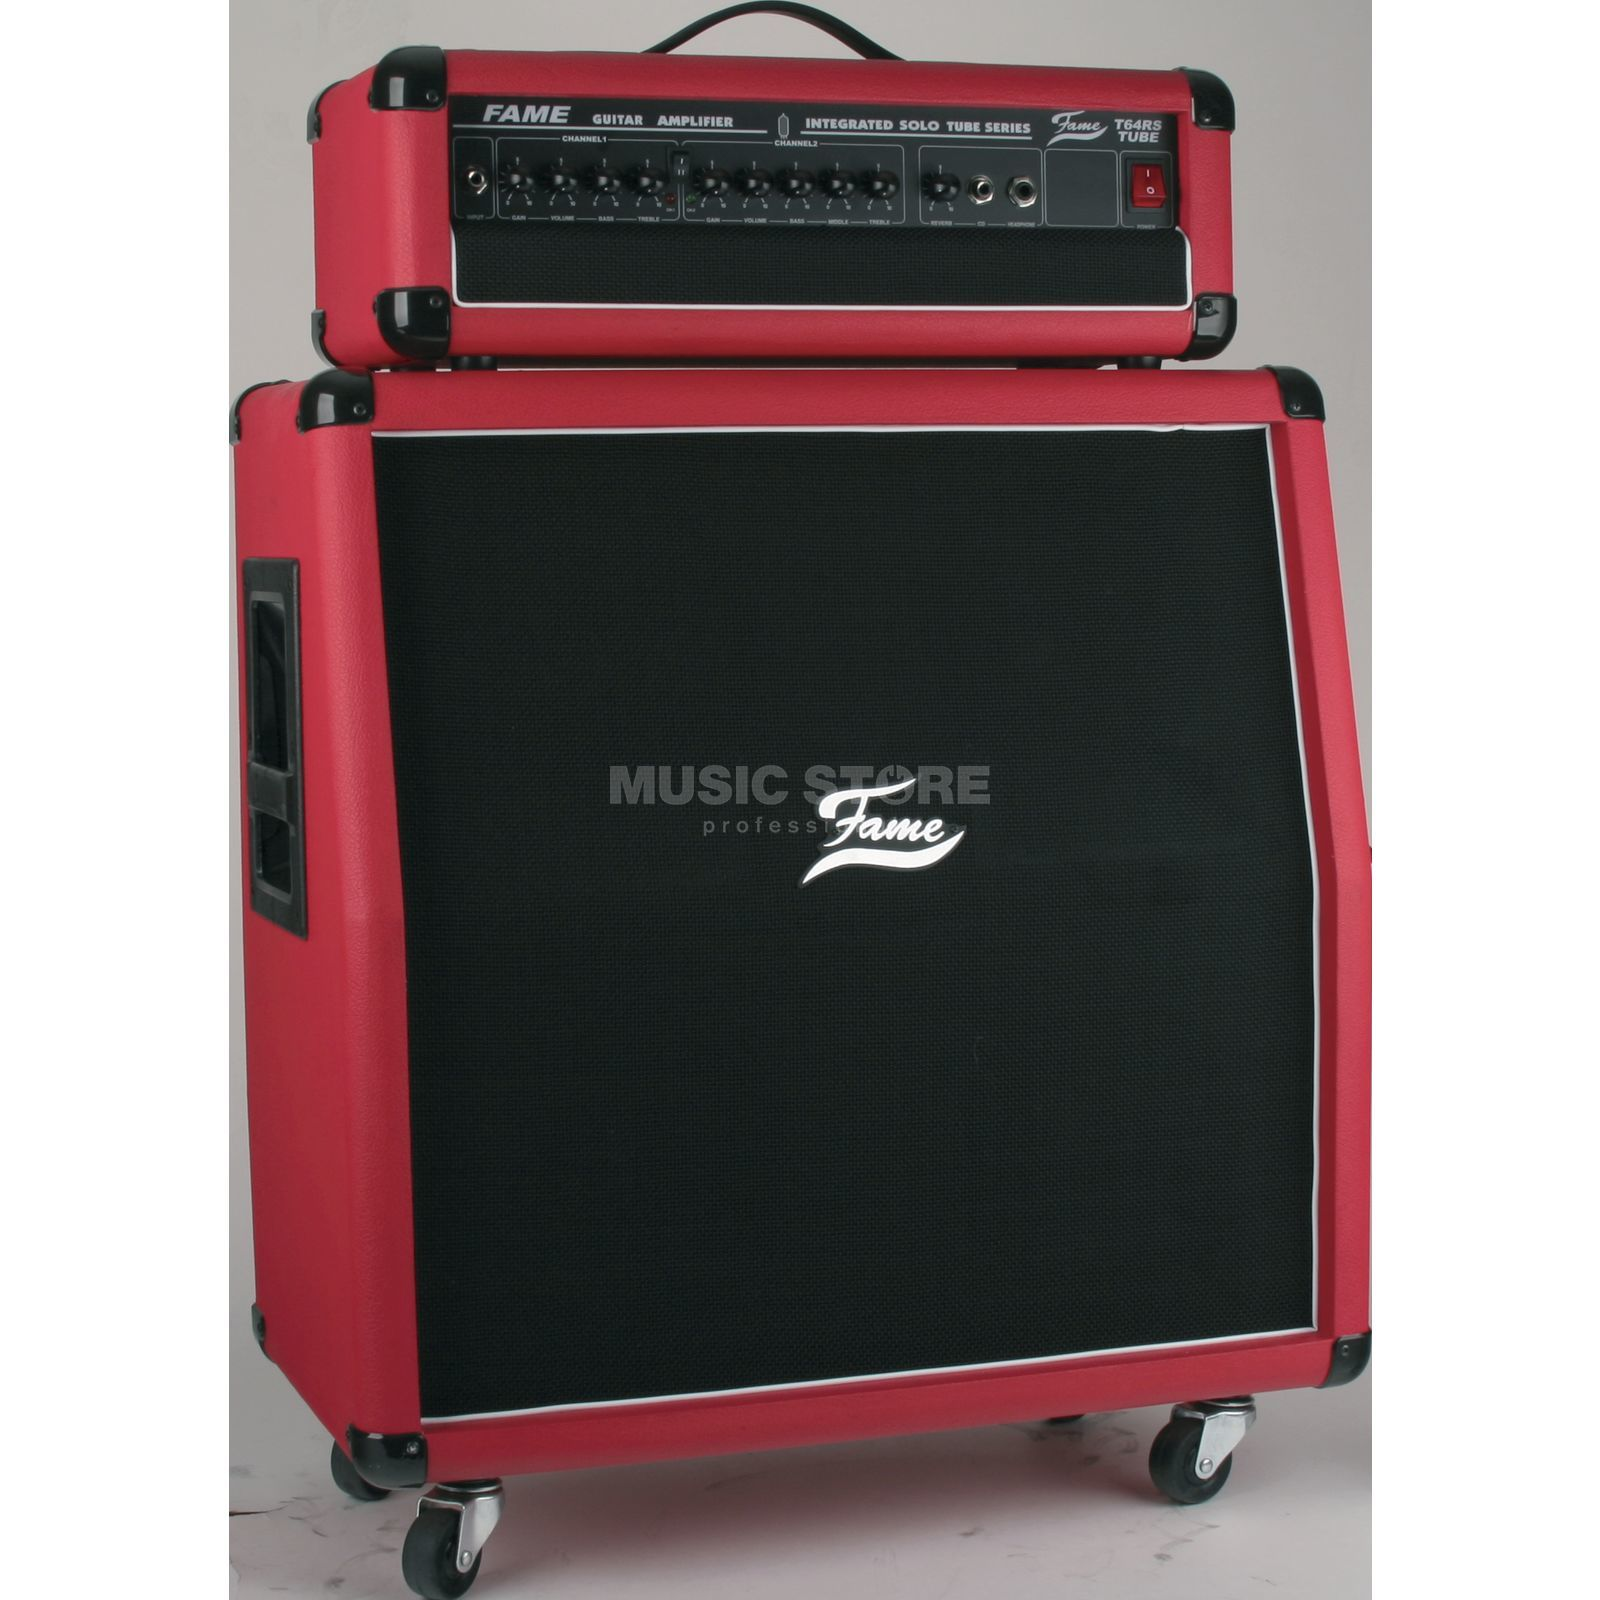 "Fame T 64 RS Red 60 WattTop + 4x8""B 2-Ch., Tube Amplifier,CD-Input Produktbillede"